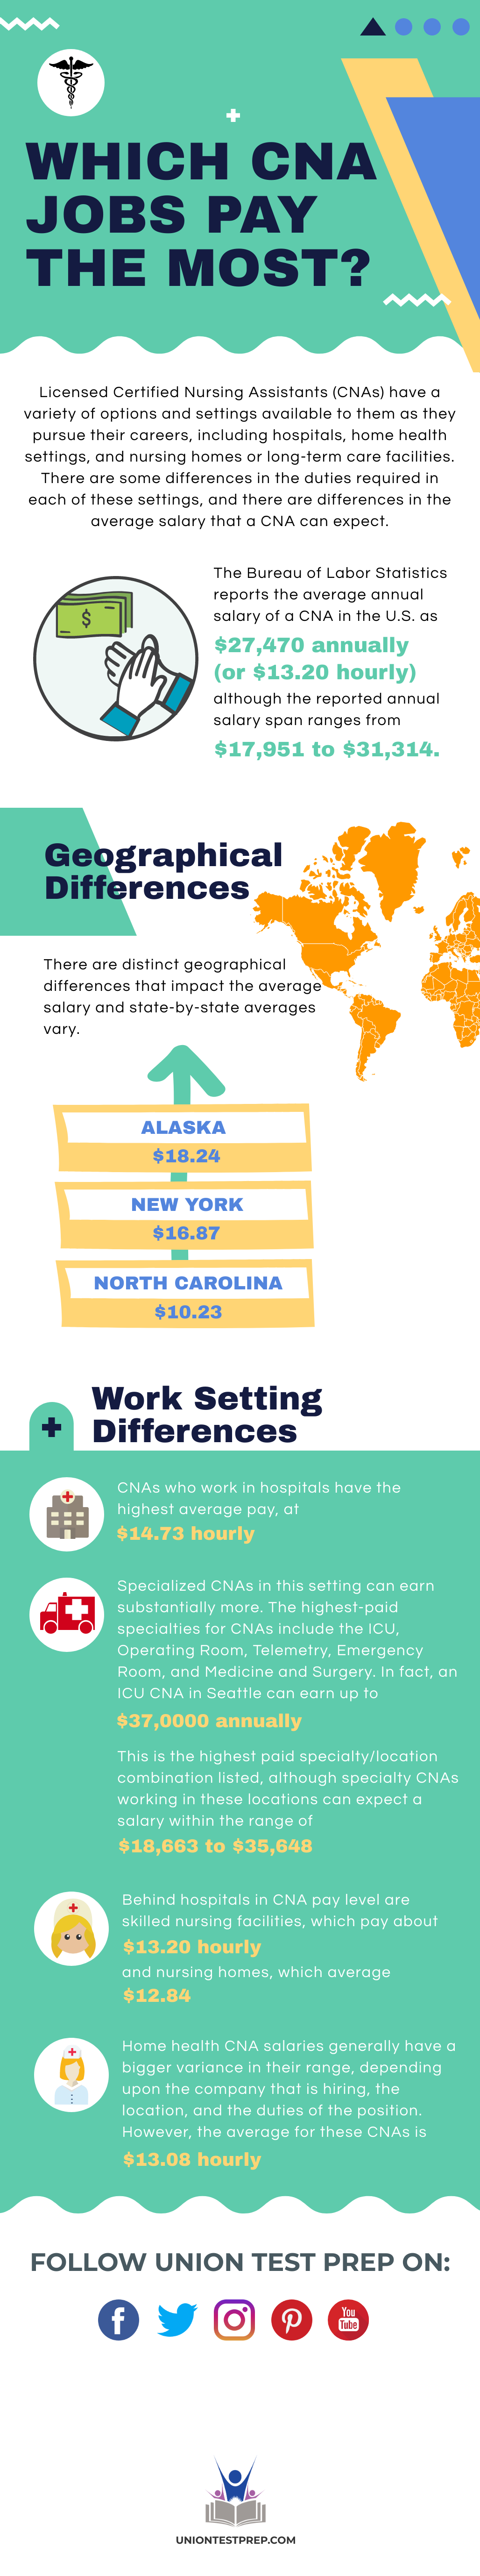 Which CNA Jobs Pay the Most?